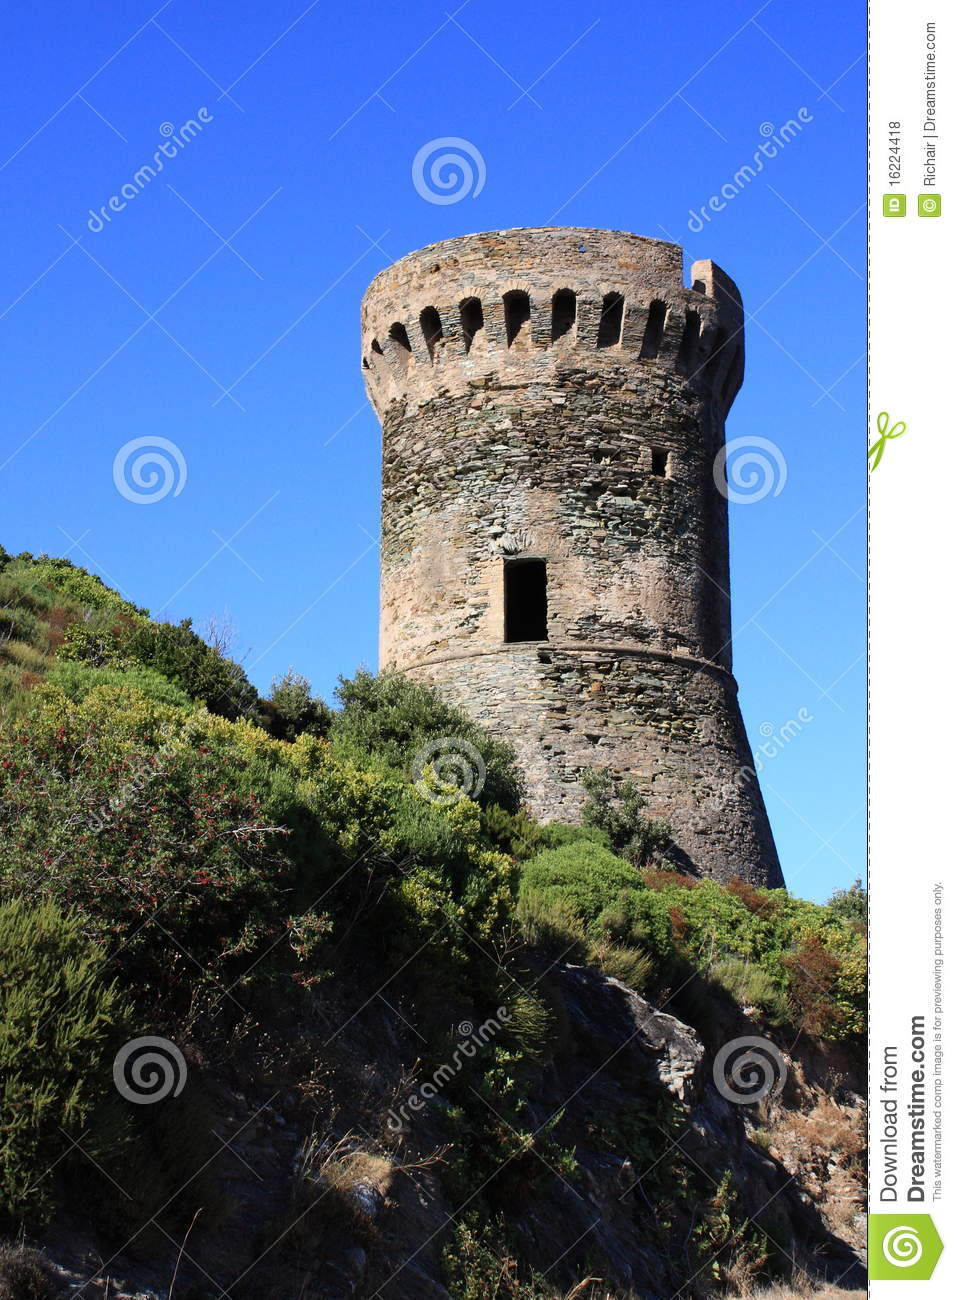 Ancient Watchtower Royalty Free Stock Photos Image 16224418